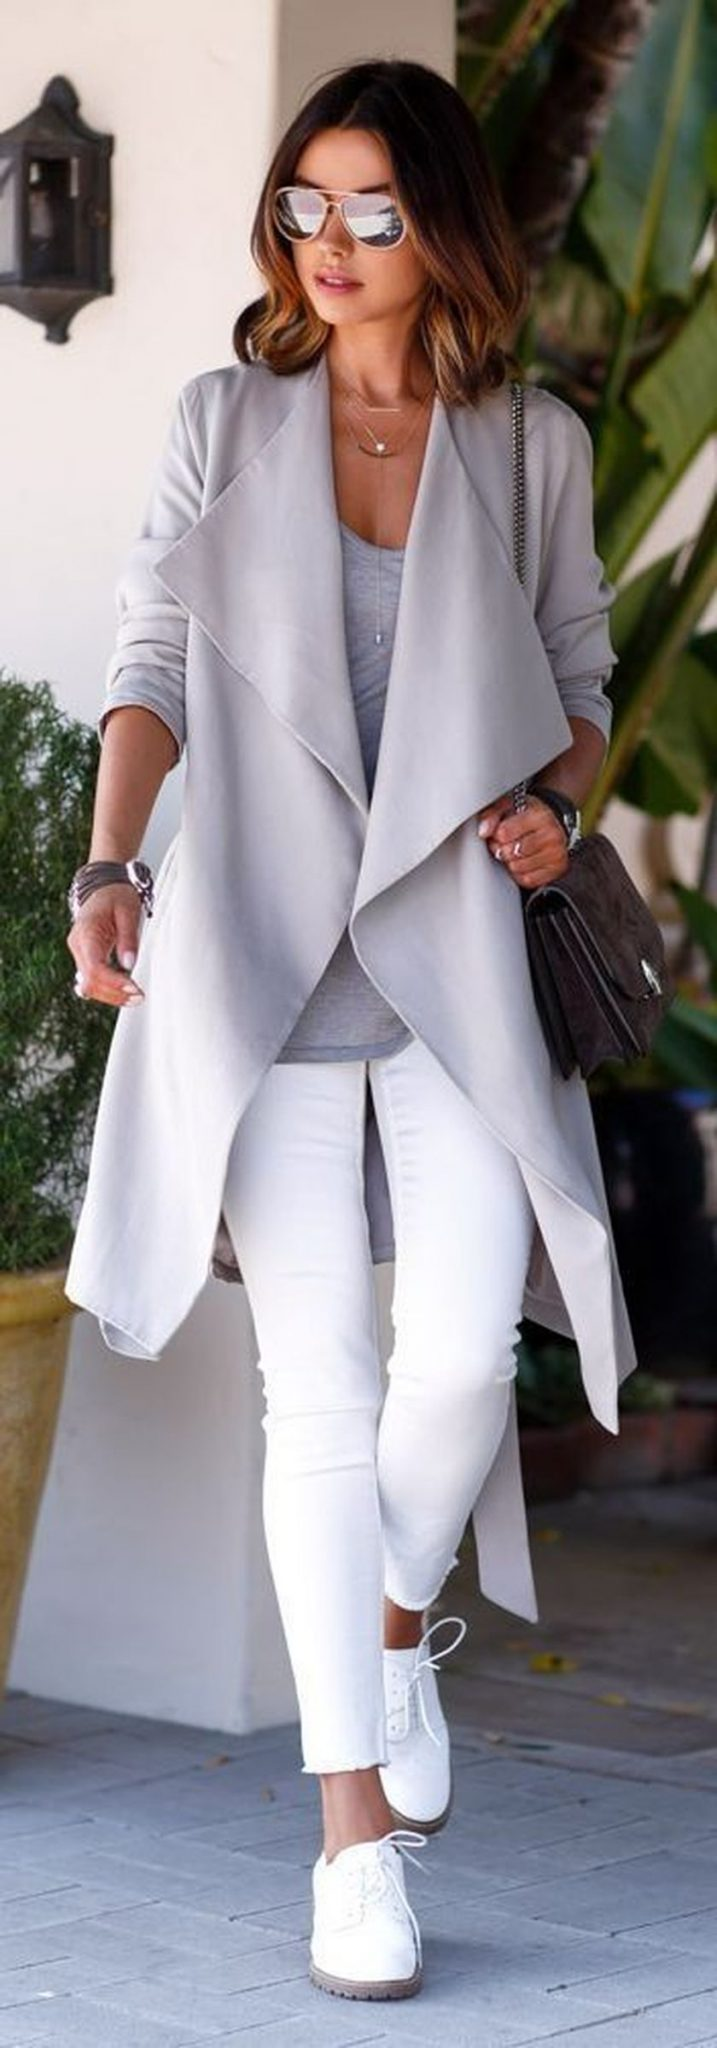 How to wear white sneaker for spring outfits 105